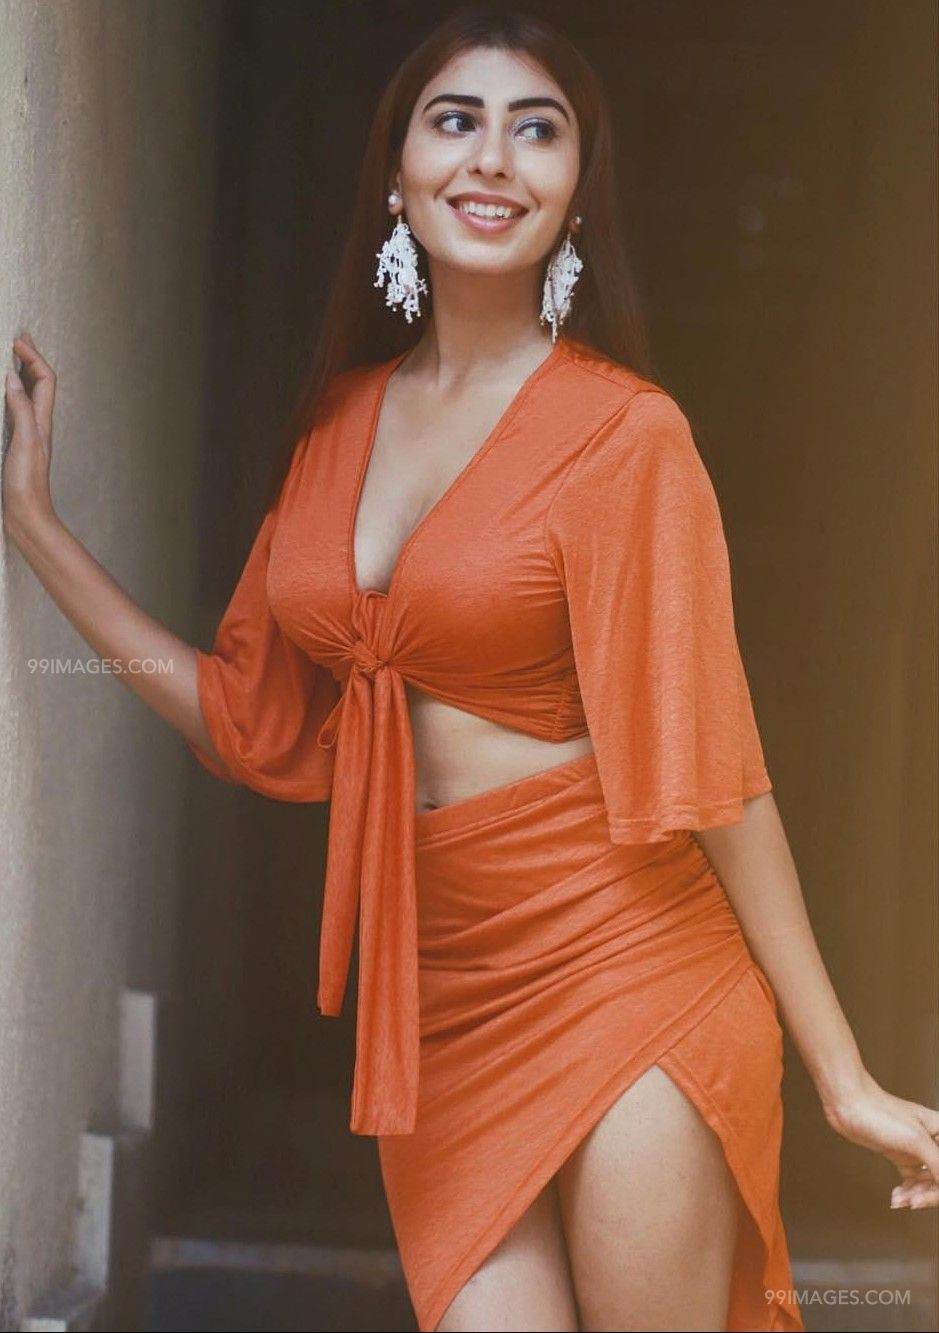 Ruma Sharma Latest Hot Photoshoot Photos in HD (1080p) (Instagram) (41460) - Ruma Sharma